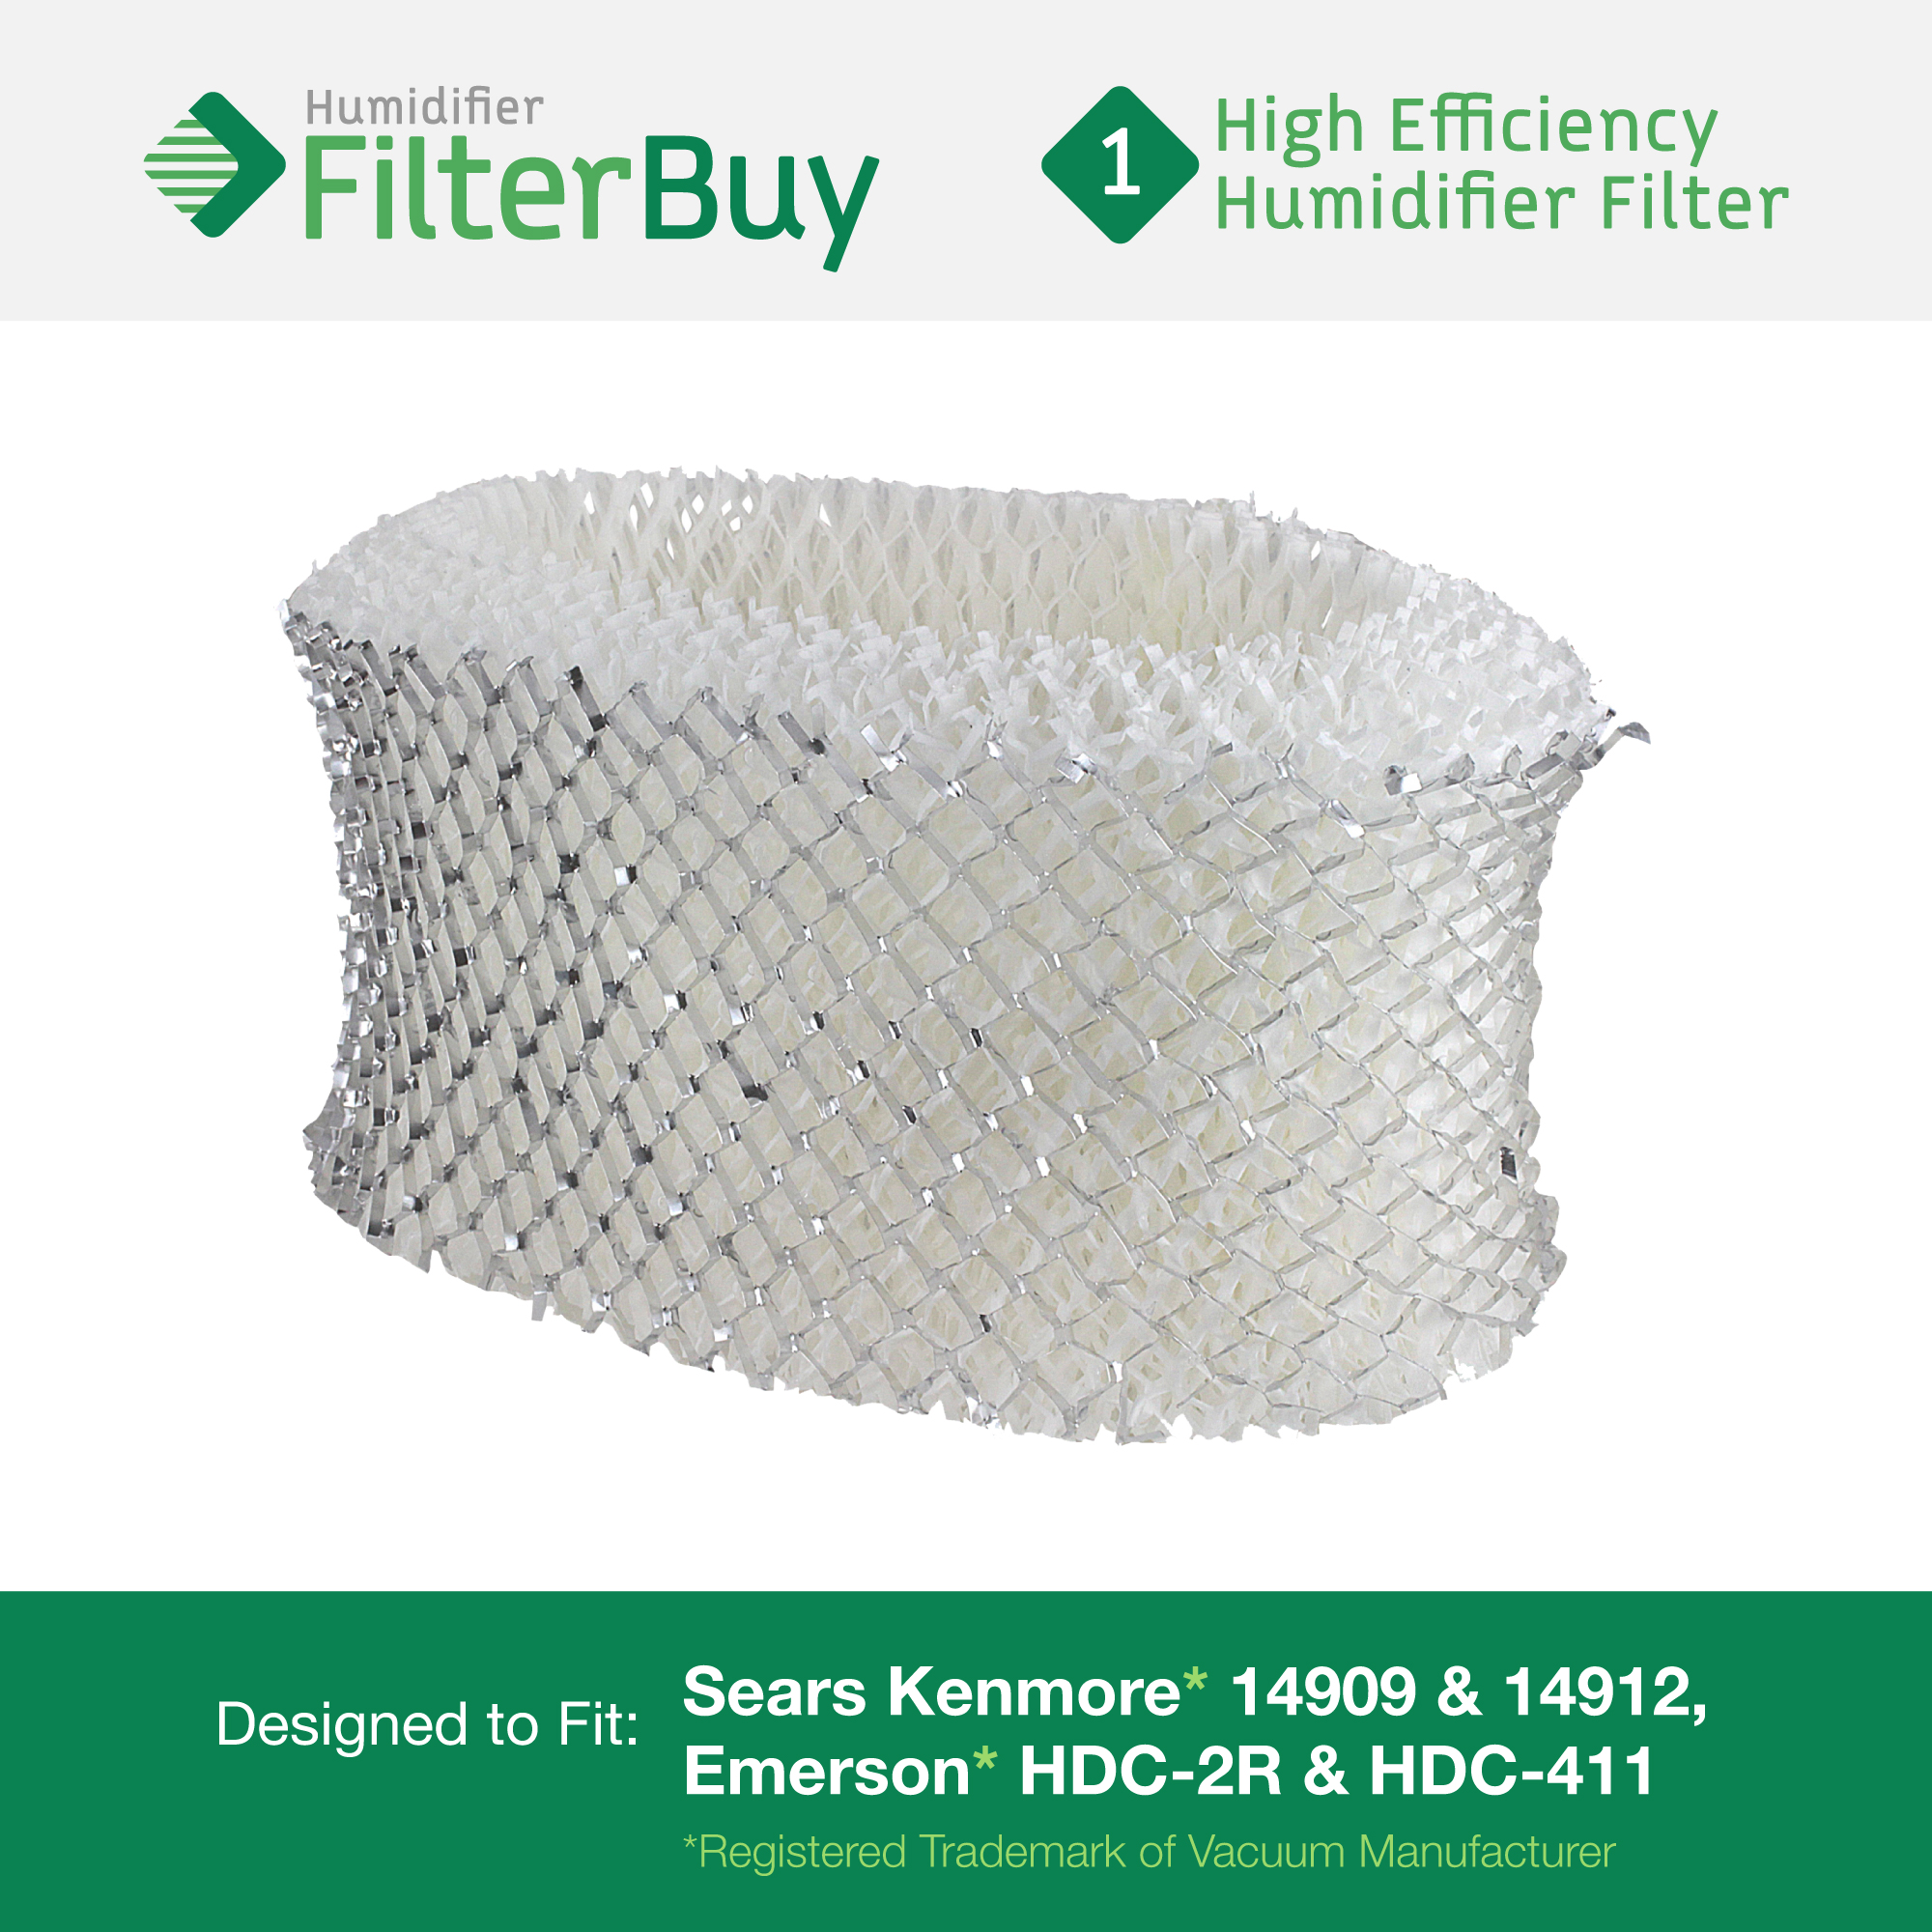 Holmes HWF62 Humidifier Filter. Replacement for part # HWF62, HWF62D, HWF-62. Fits Holmes Models HM1701, HM1761, HM1300 & HM1100. Designed by AFB in the USA.